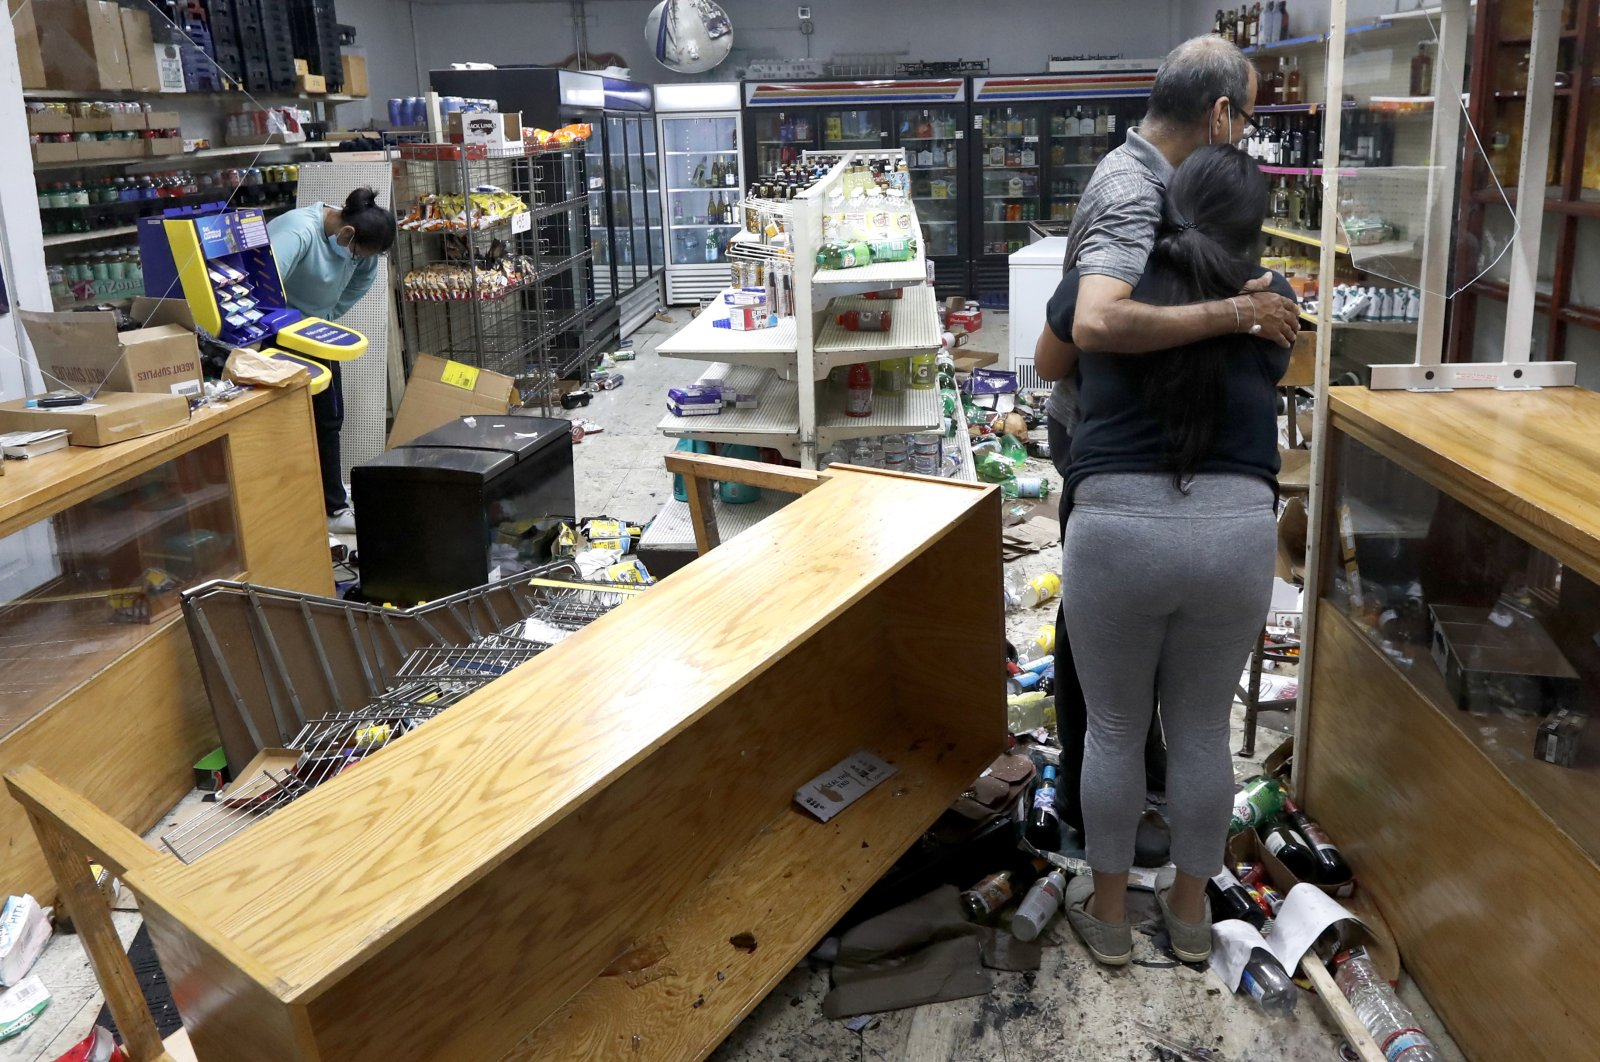 Yogi Dalal (R) hugs his daughter Jigisha as his other daughter Kajal (L) bows her head at the family food and liquor store after it was vandalized in Chicago, Illinois, U.S., Aug. 10, 2020. (AP Photo)